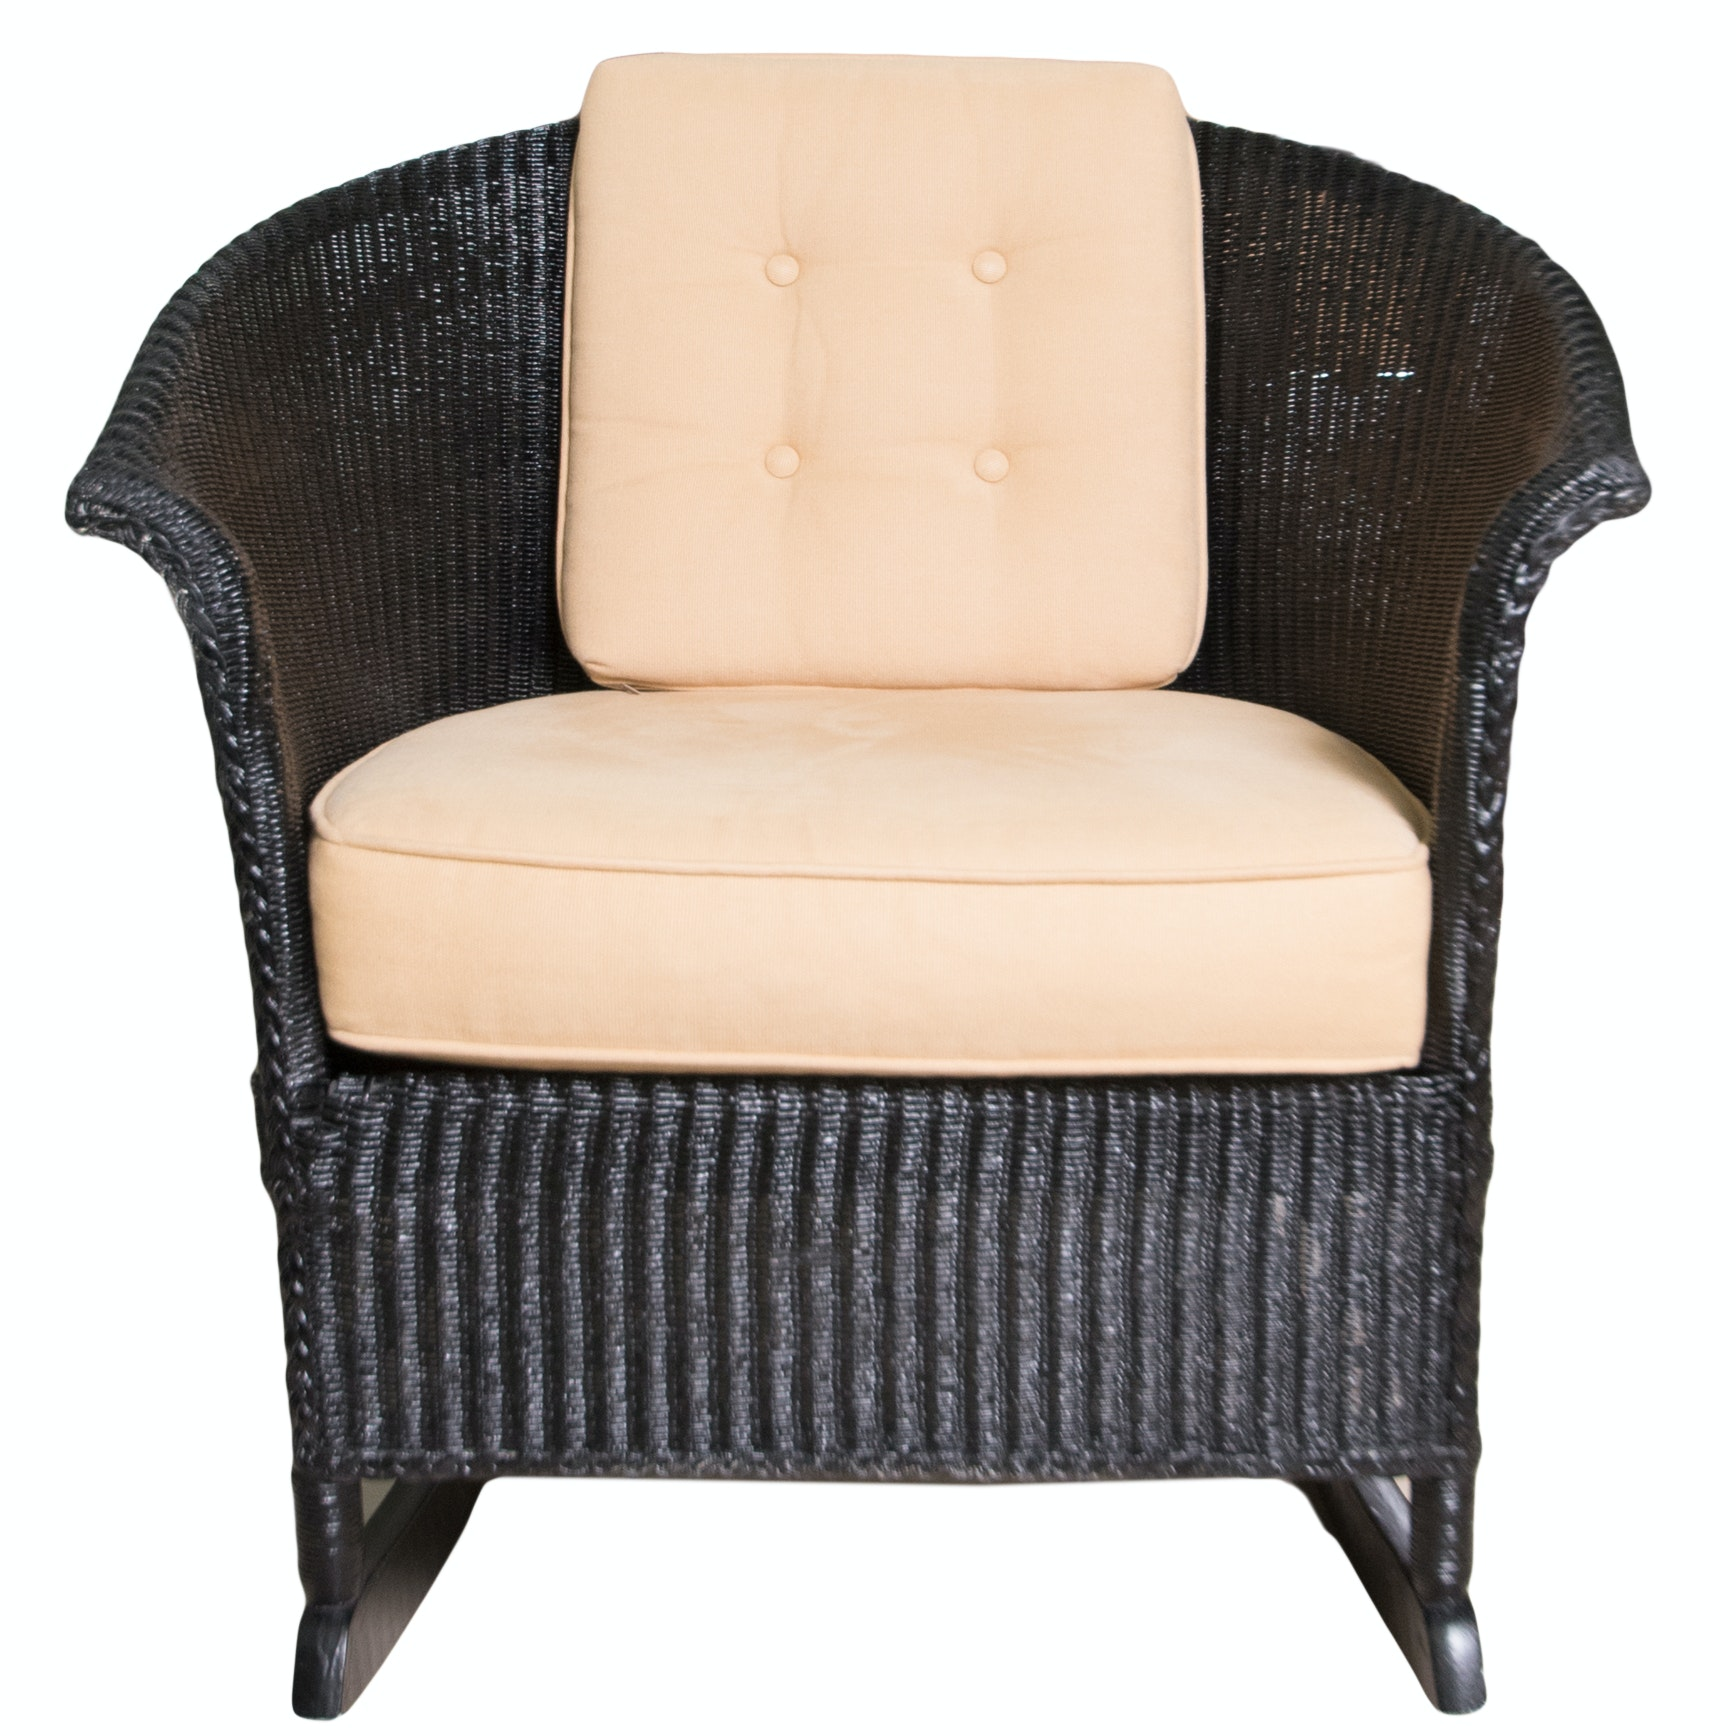 Black Wicker Rocking Chair ...